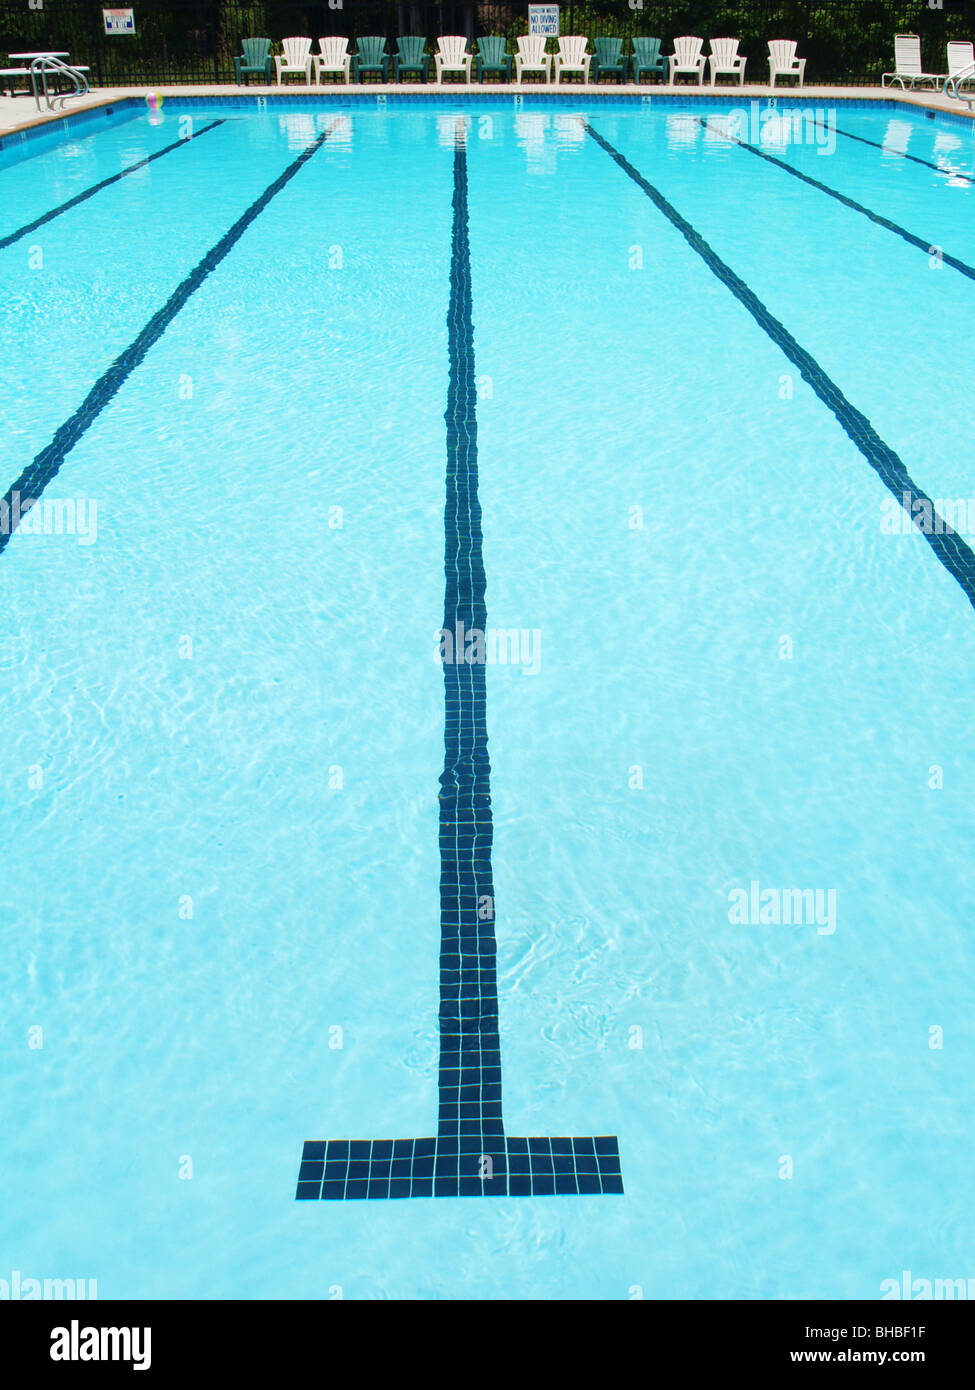 olympic sized swimming pool lane with stripe on the bottom